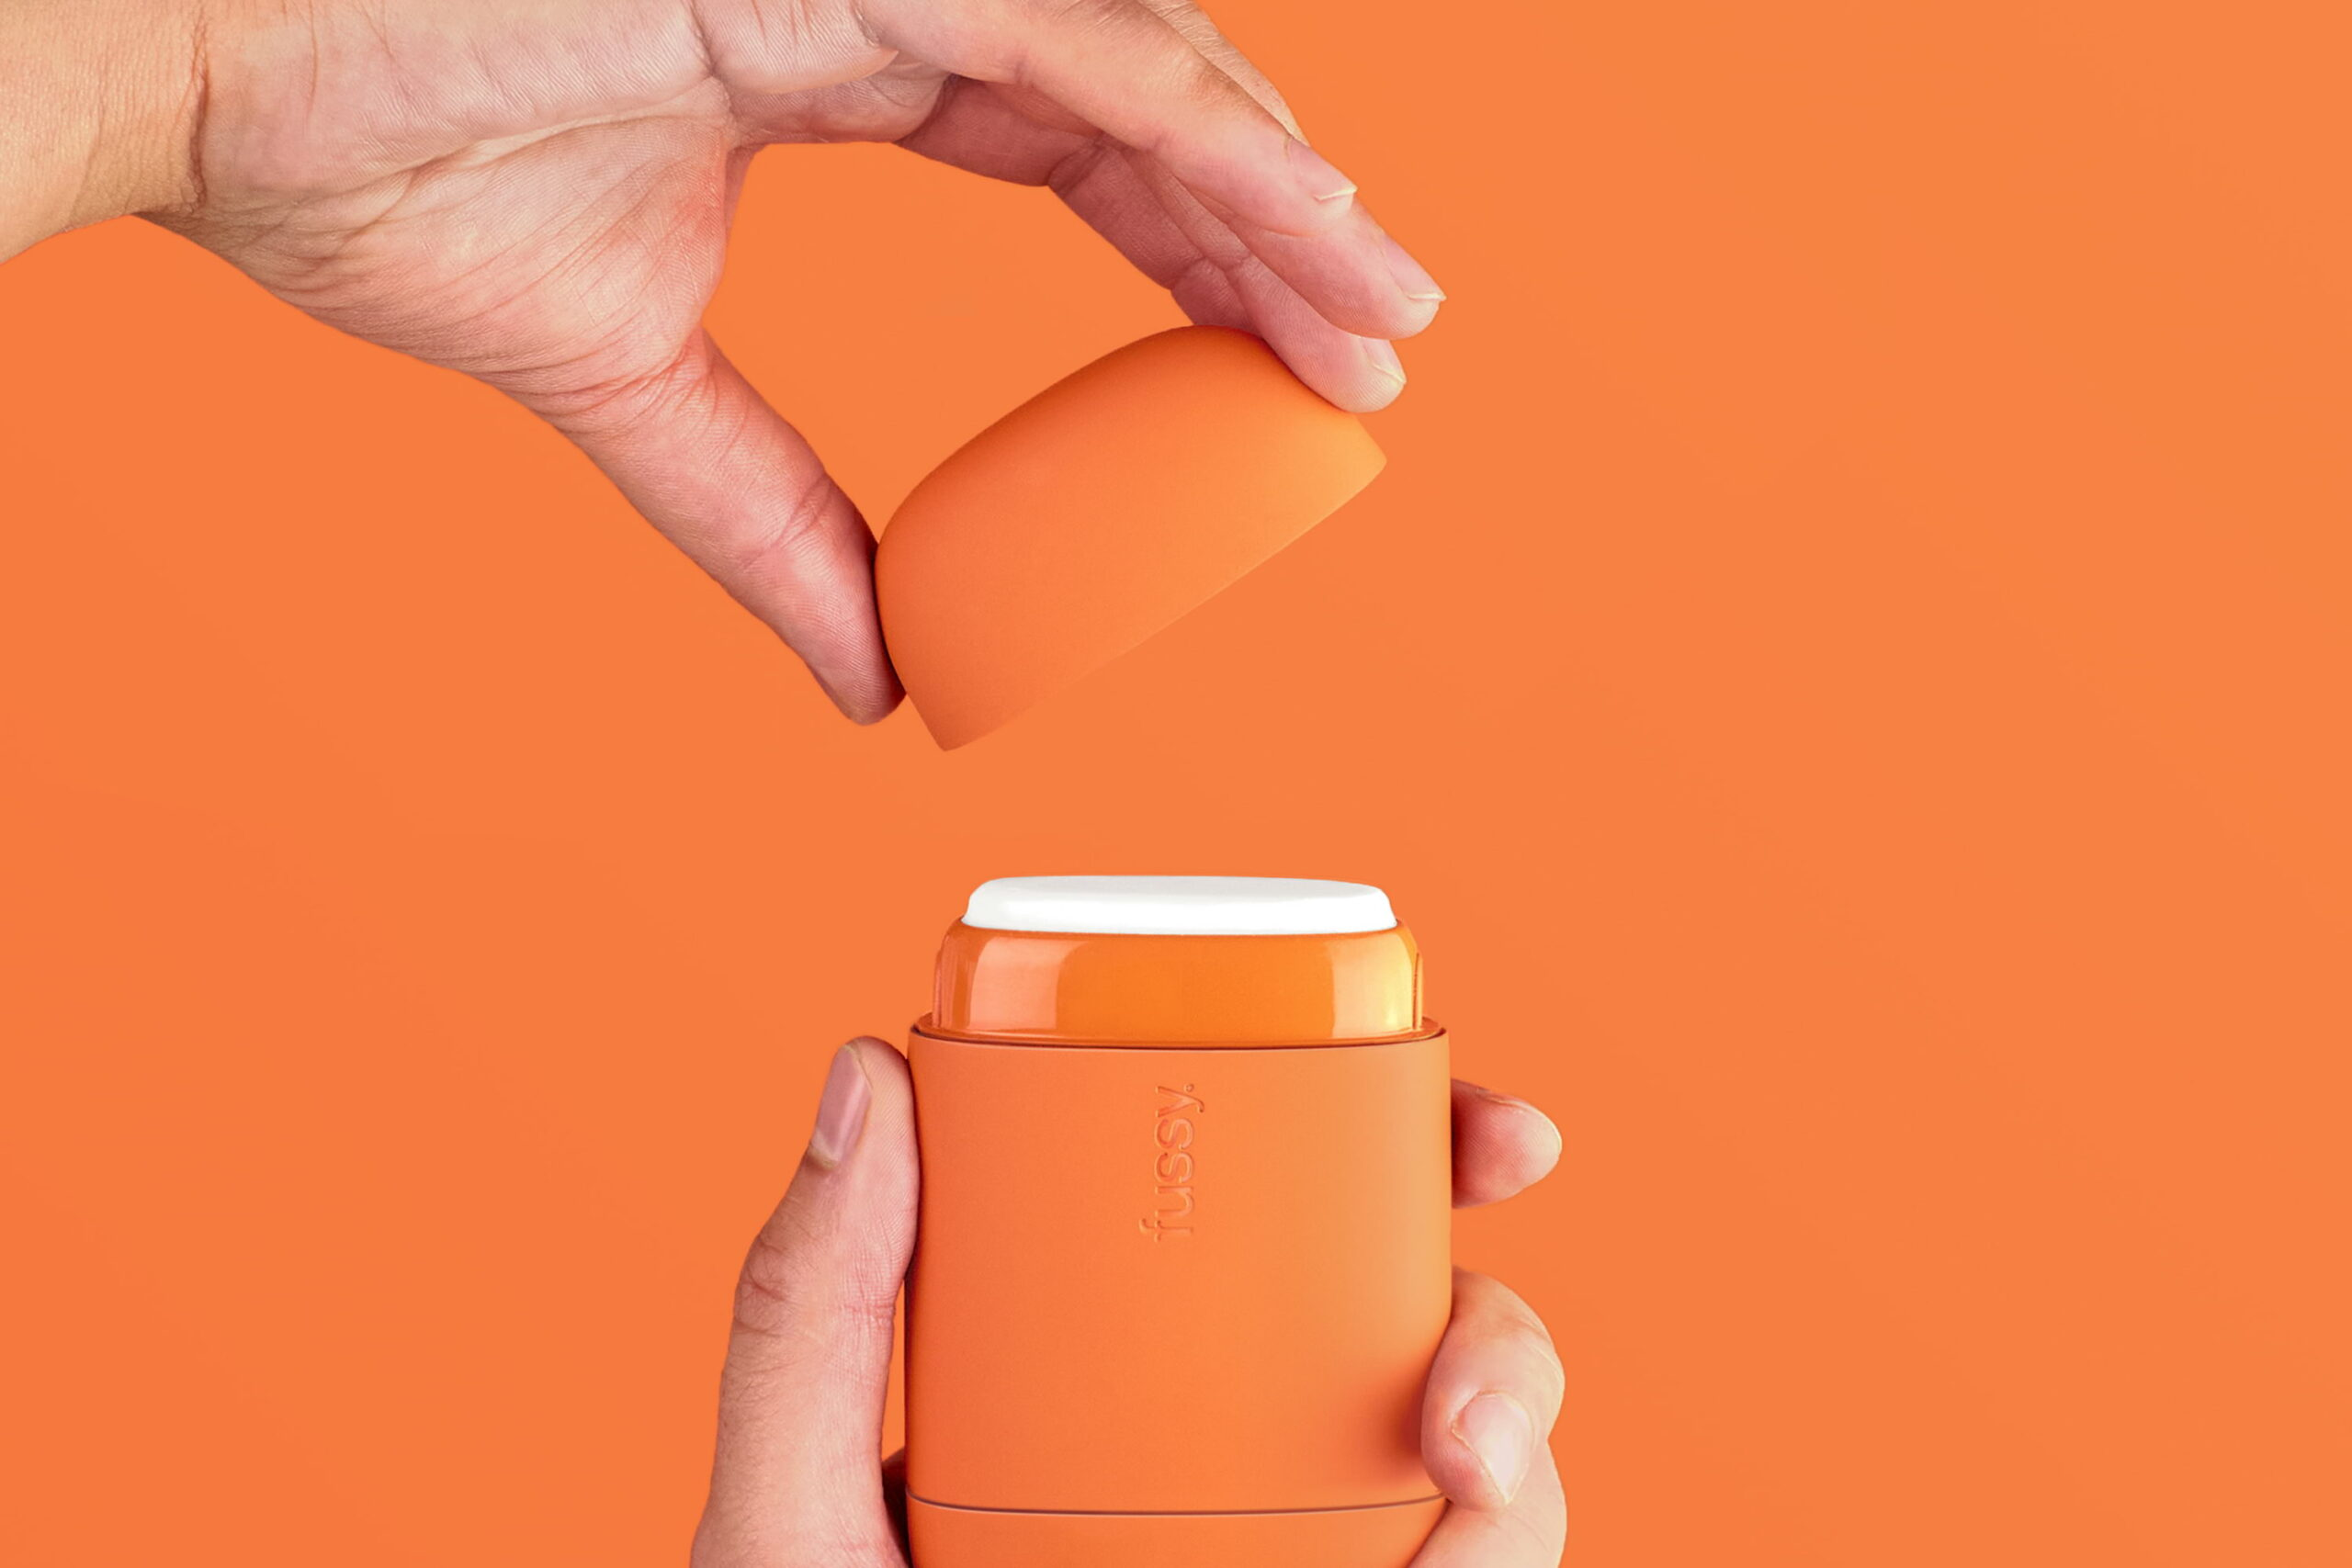 Blond-Design-Agency-Cosmetics-Packaging-Sustainable-Eco-Deodorant-Top-Orange-Landscape